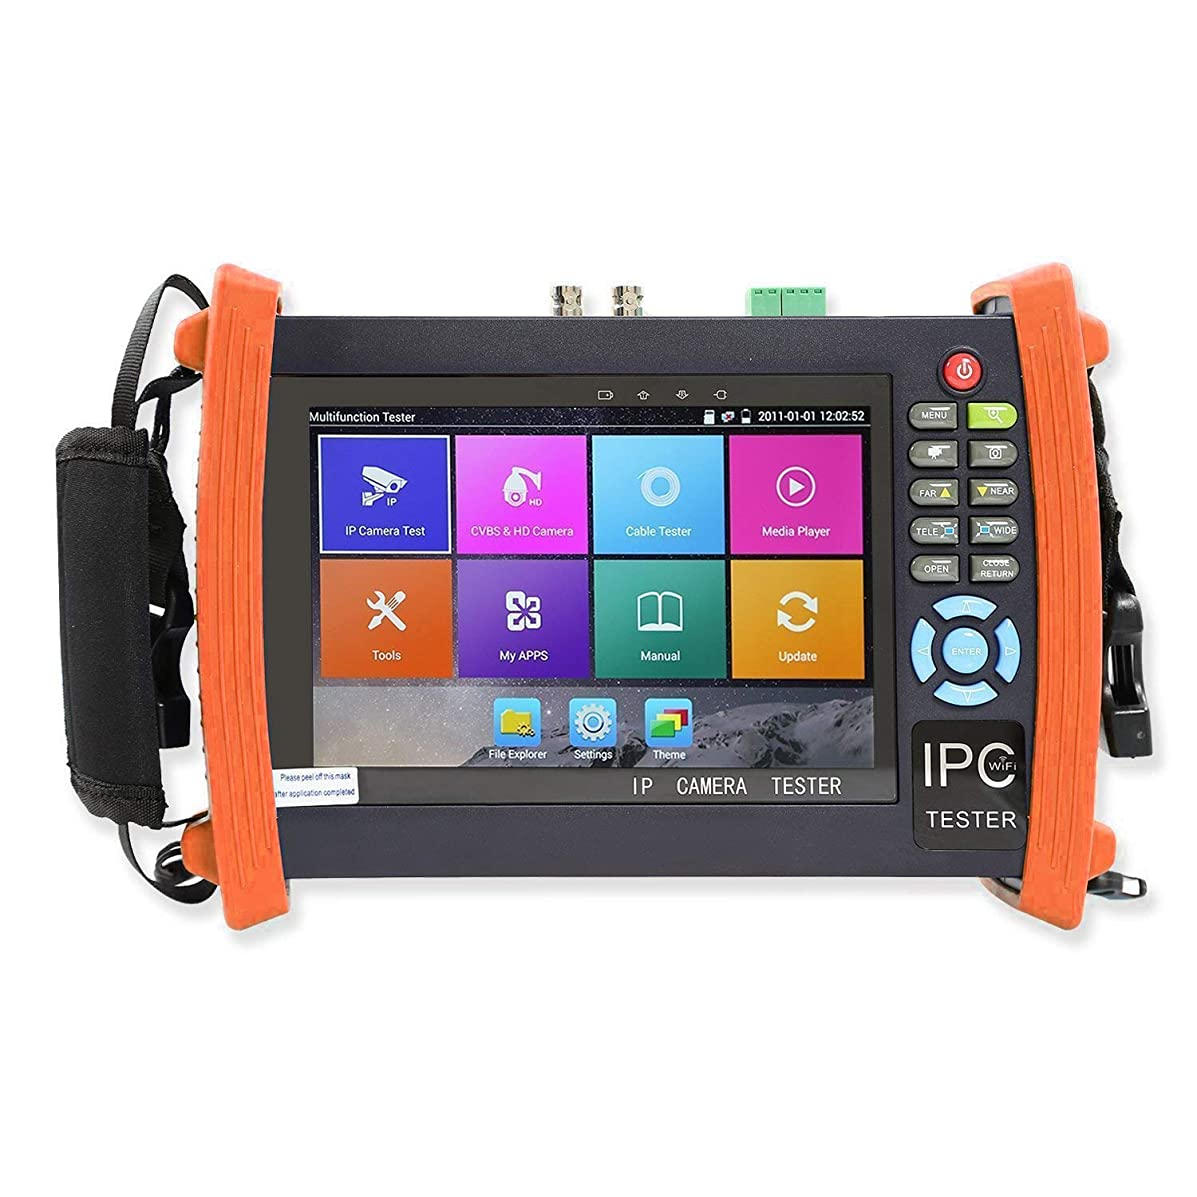 Electop Upgrated 7 Inch CCTV Tester Onvif IP Camera Tester Touch Screen Monitor AHD,HD-TVI,HD-CVI HDMI 1080P,PTZ Control,POE,WiFi,IP Scan,Port Flashing ET-ADH8600 Plus